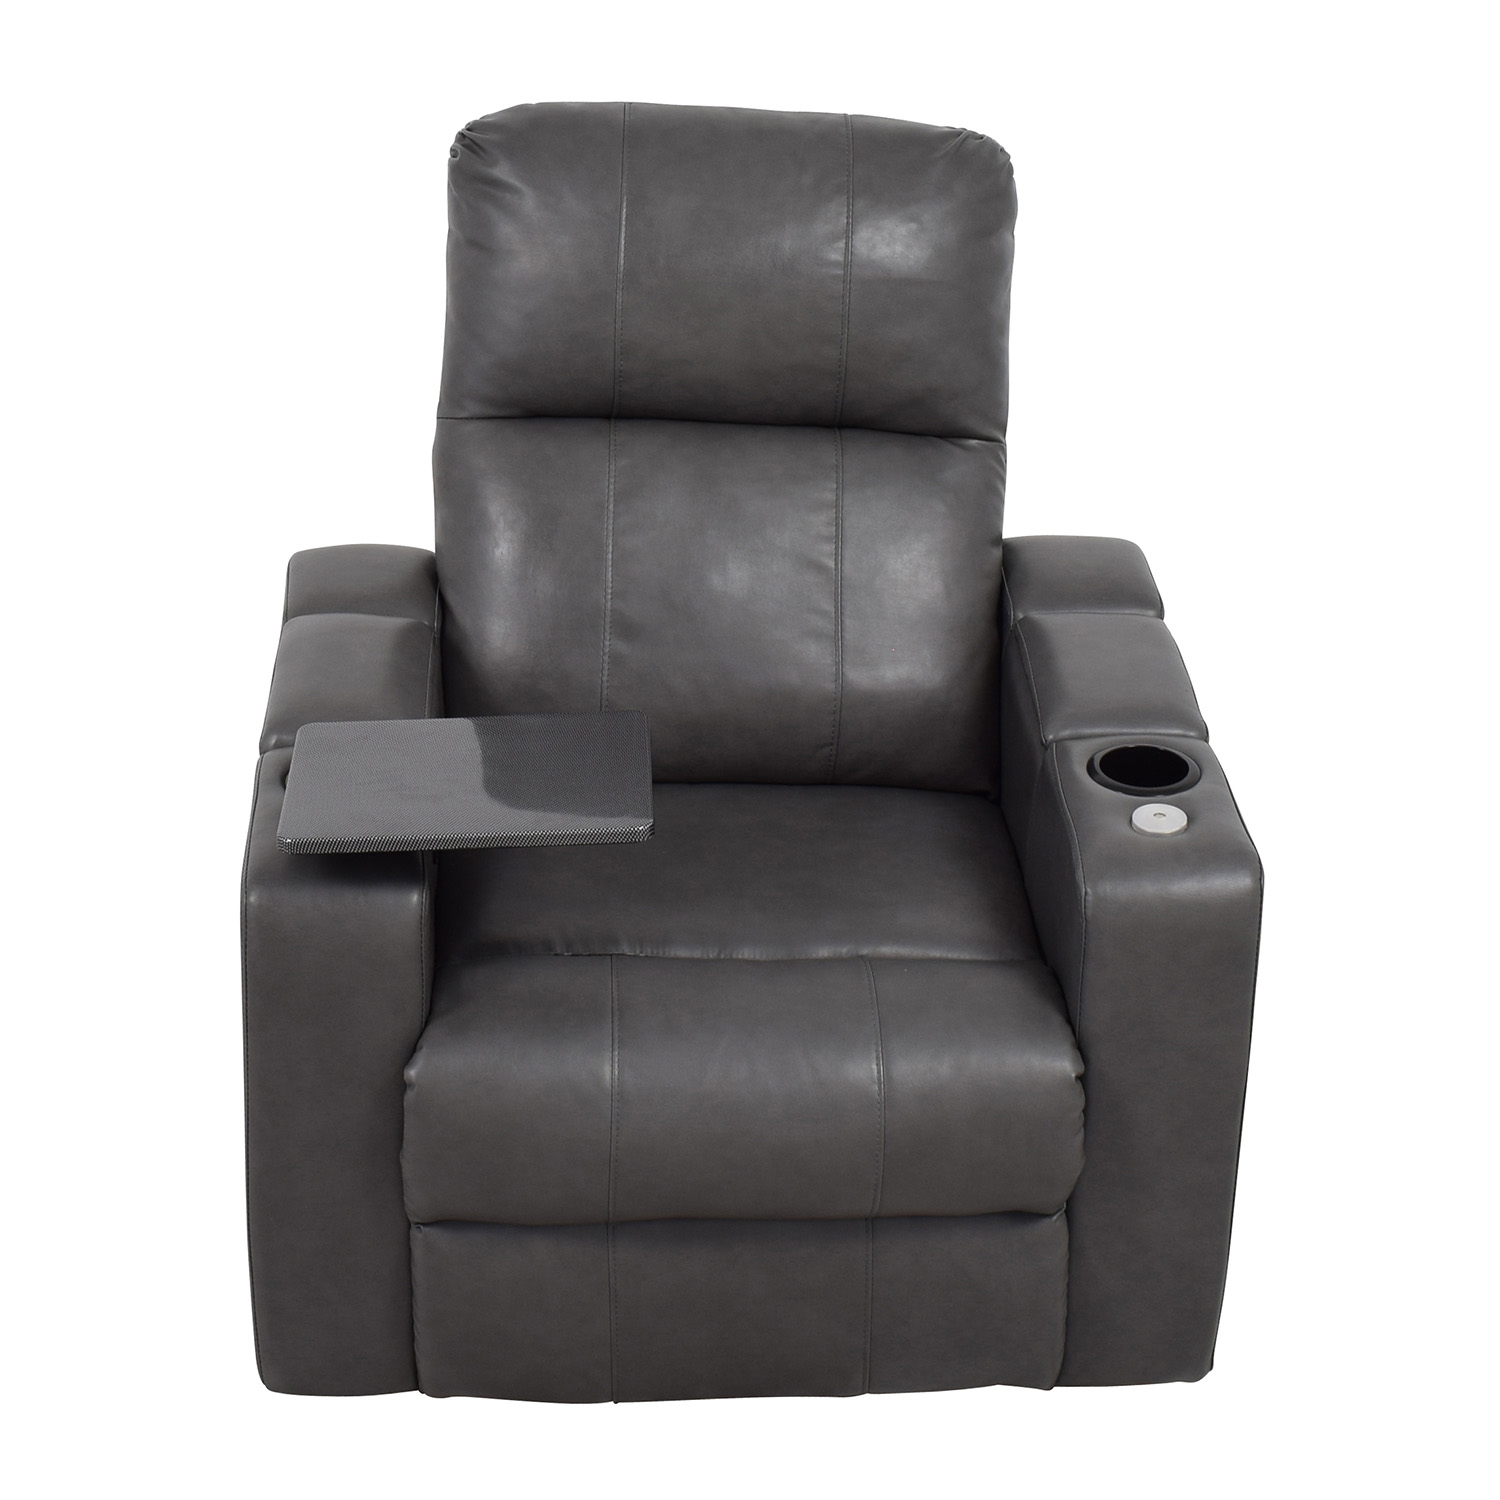 motor chair hainworth massage chairs with cheap shop black rise dual and fenetic recliner heat wellbeing